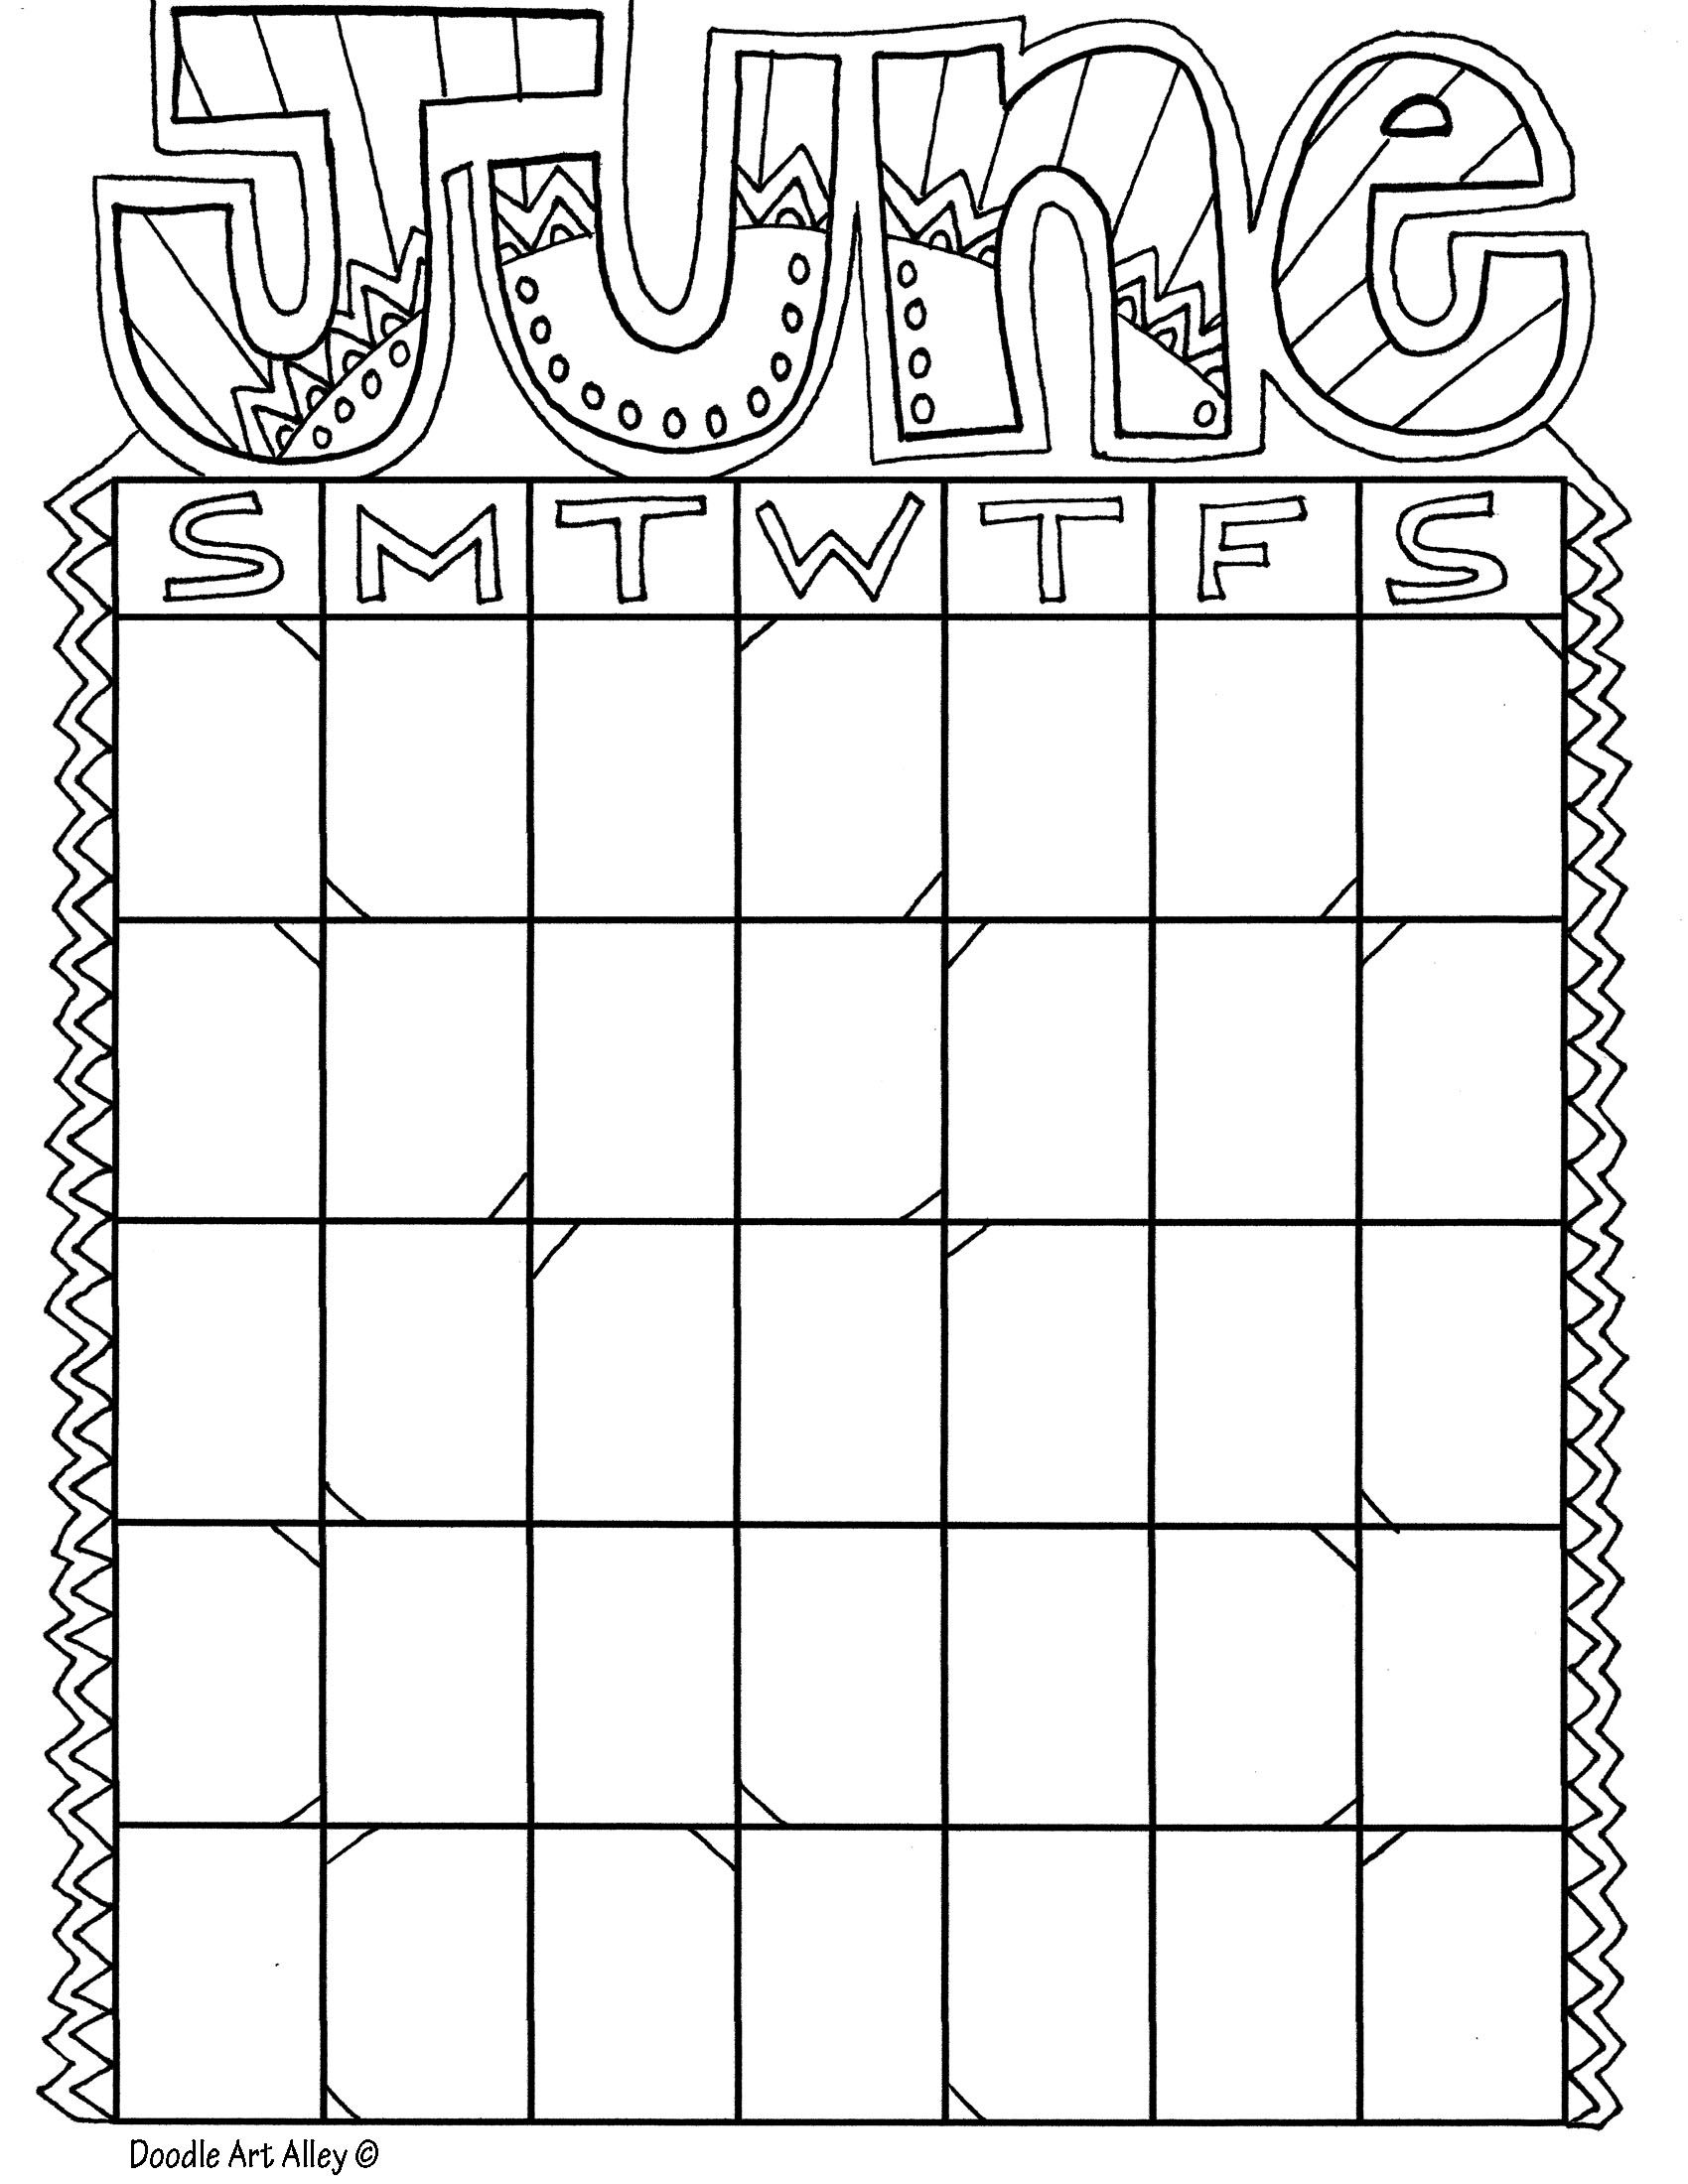 Calendars Coloring Calendar Coloring Pages Kids Calendar